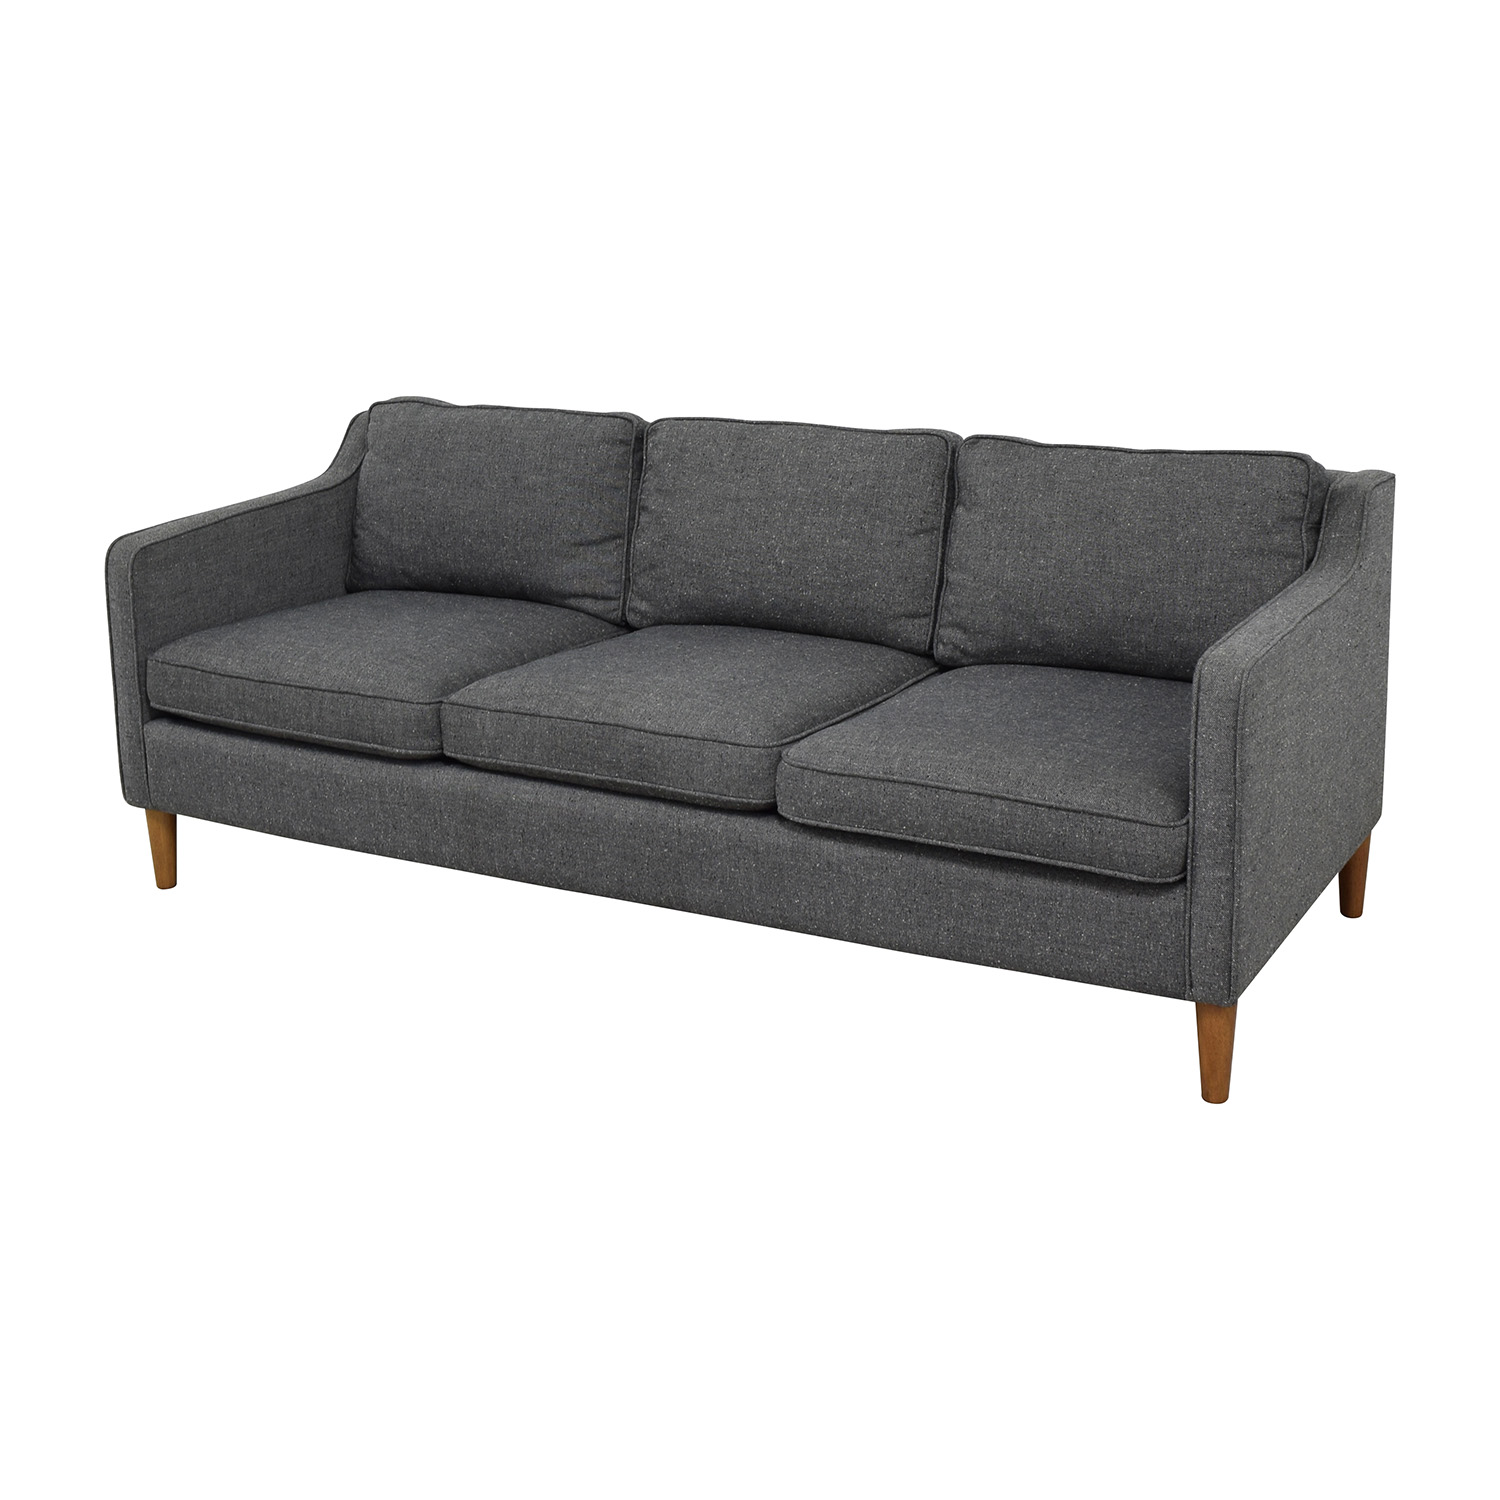 48 off west elm west elm hamilton sofa in tweed sofas for Sectional sofa bed hamilton